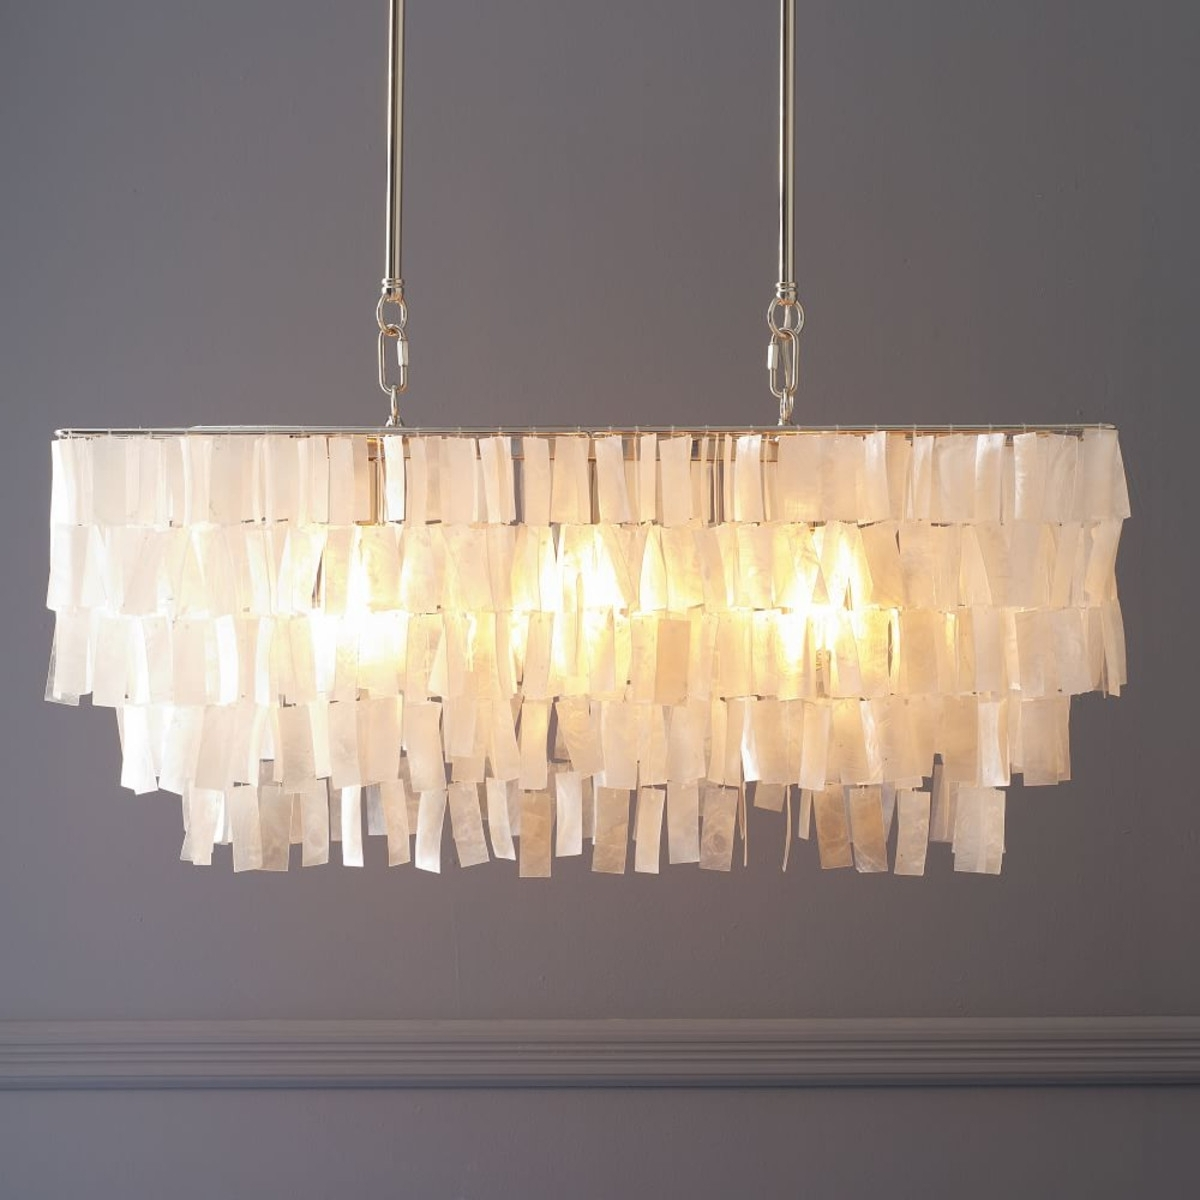 Newest Long Hanging Chandeliers Pertaining To Large Rectangle Hanging Capiz Chandelier – White (View 14 of 20)